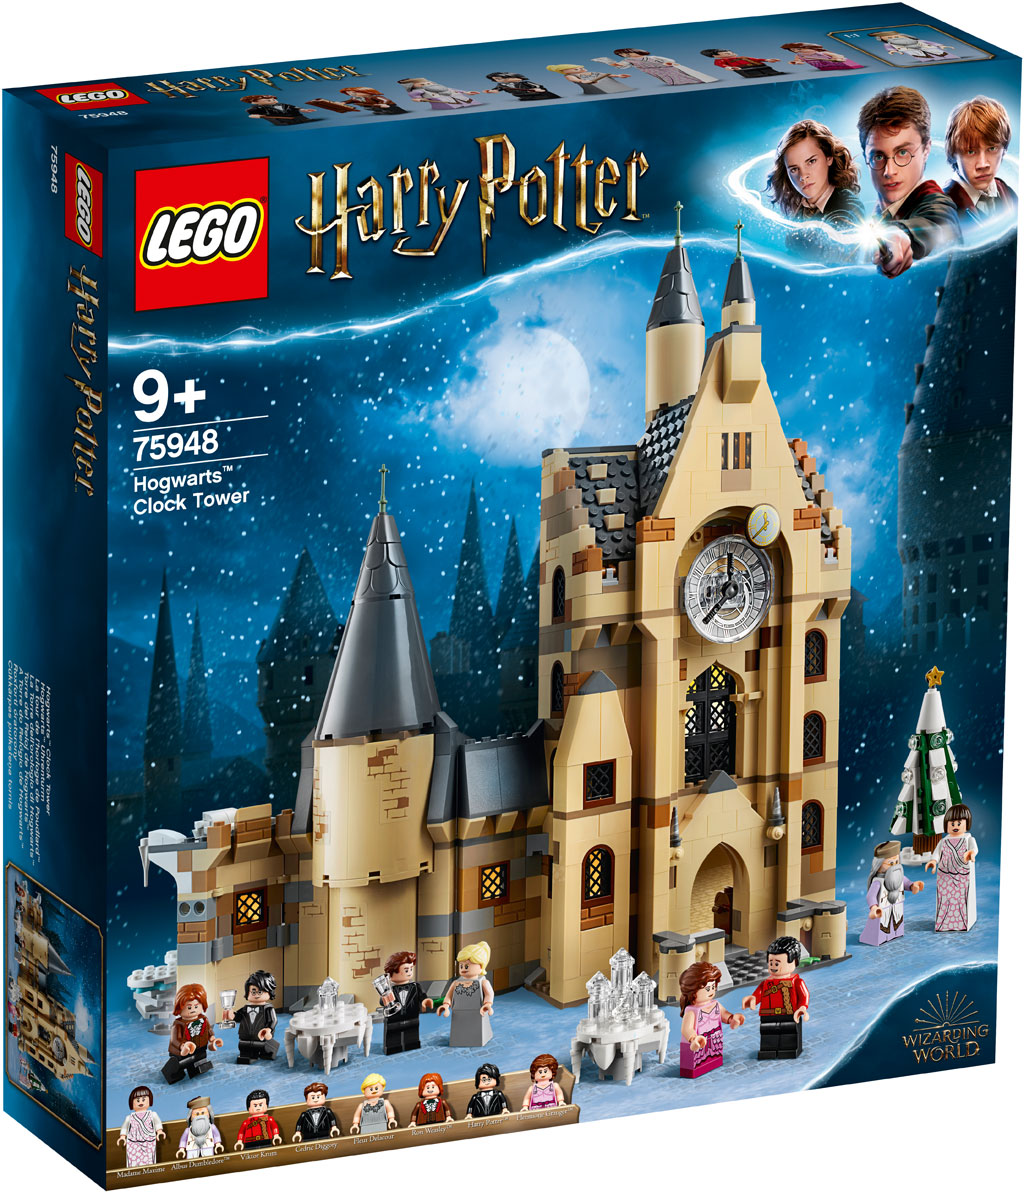 lego-harry-potter-hogwarts-clock-tower-75948-box-2019 zusammengebaut.com